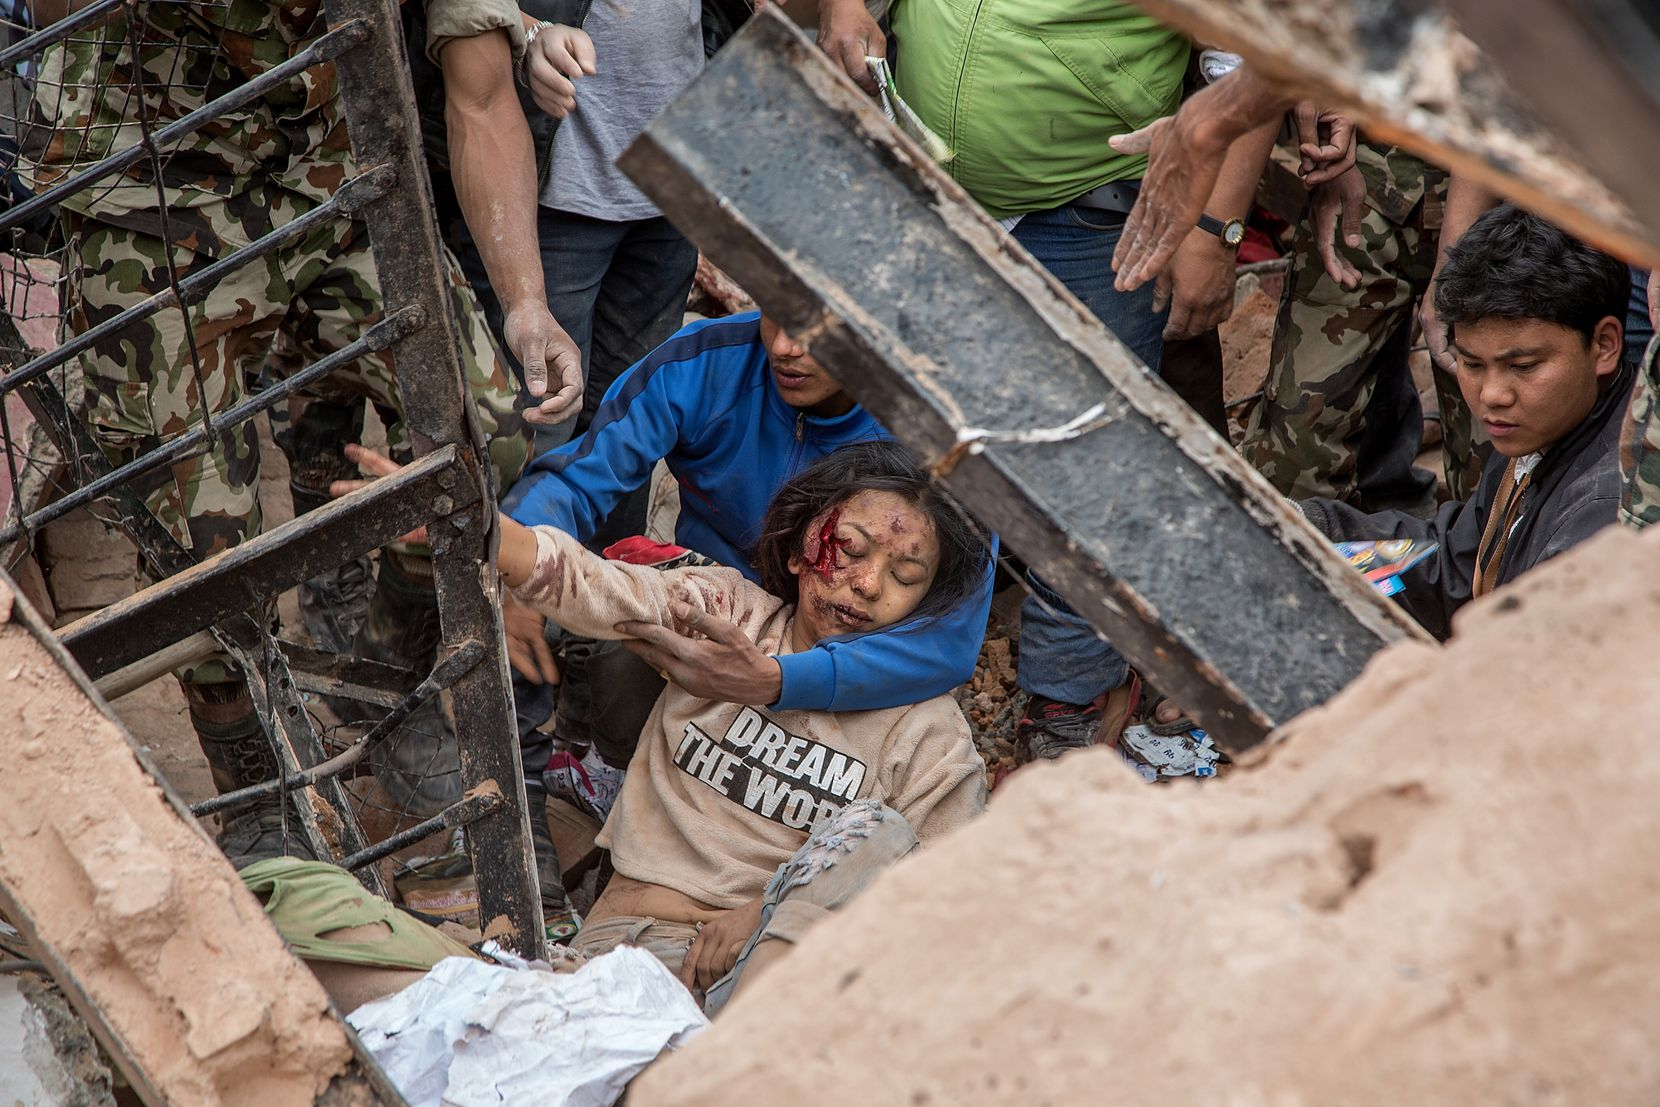 KATHMANDU, NEPAL - APRIL 25: (EDITORS NOTE: Image contains graphic content.) Emergency rescue workers find a survivor in the debris of Dharara tower after it collapsed on April 25, 2015 in Kathmandu, Nepal. More than 100 people have died as tremors hit Nepal after an earthquake measuring 7.9 on the Richter scale caused buildings to collapse and avalanches to be triggered in the Himalayas. Authorities have warned that the death toll is likely to be much higher. (Photo by Omar Havana/Getty Images) *** BESTPIX ***